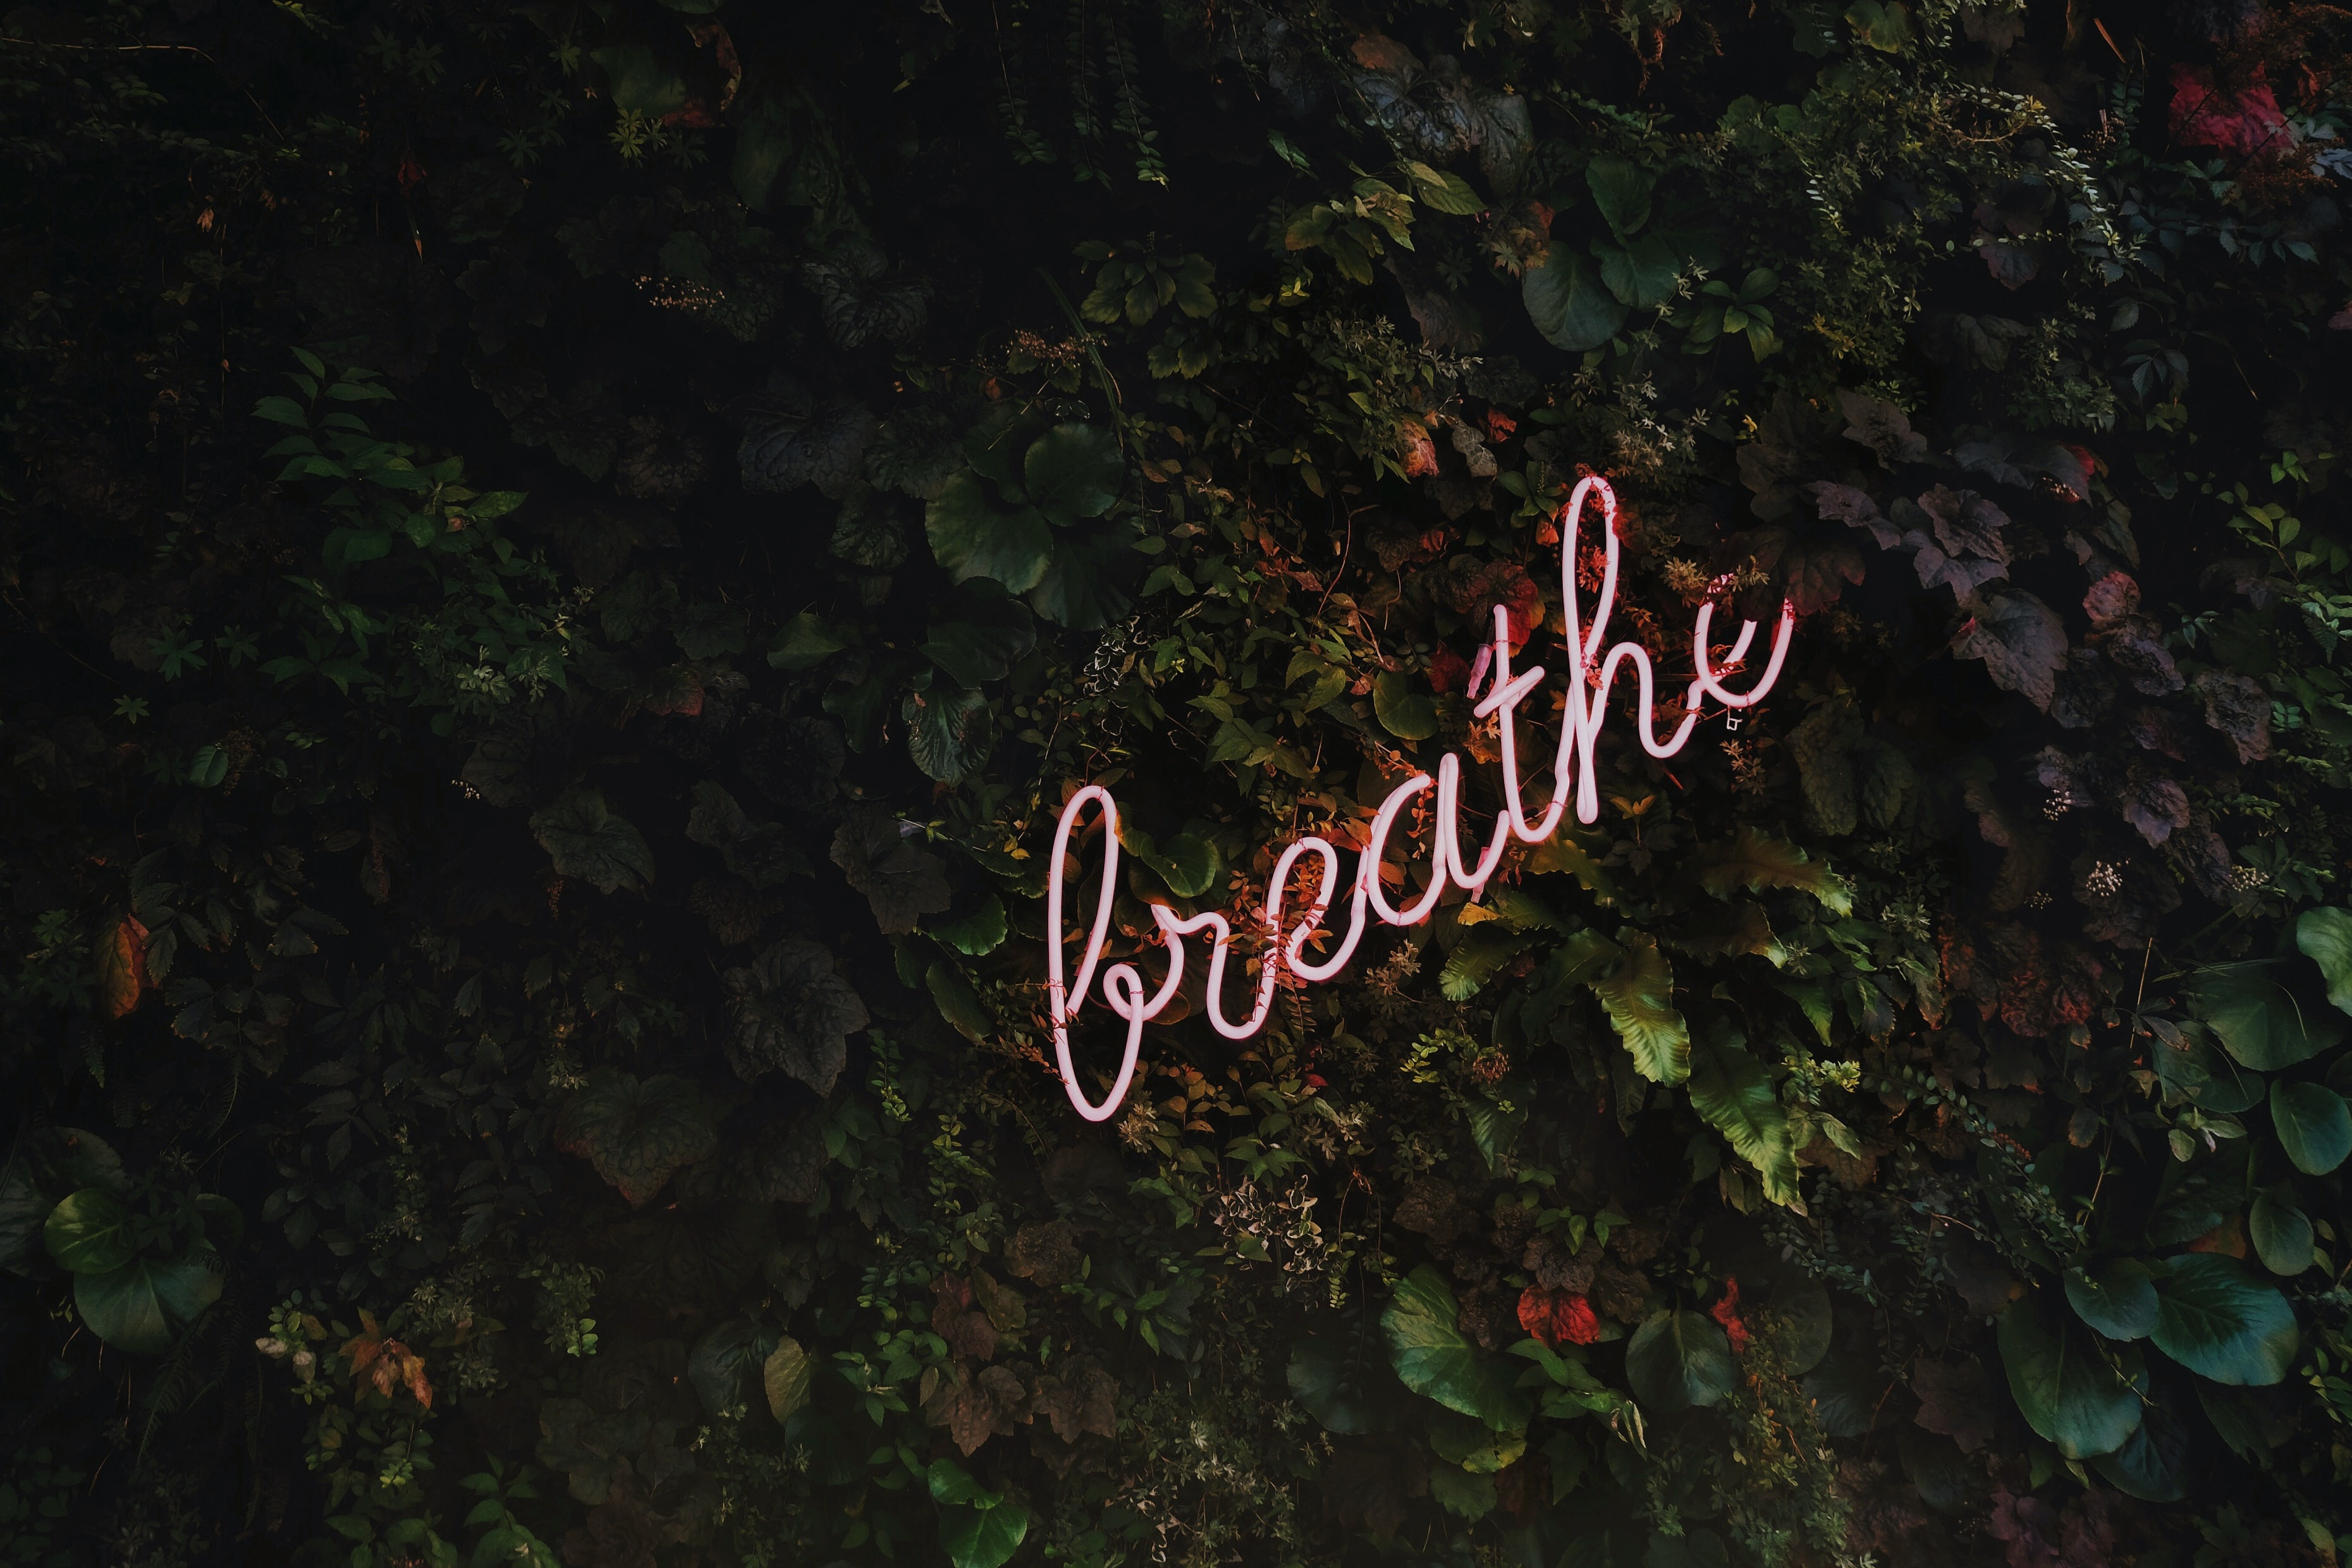 Fuel your body and mind: breathe more, stress less. Photo by Tim Goedhart on Unsplash.